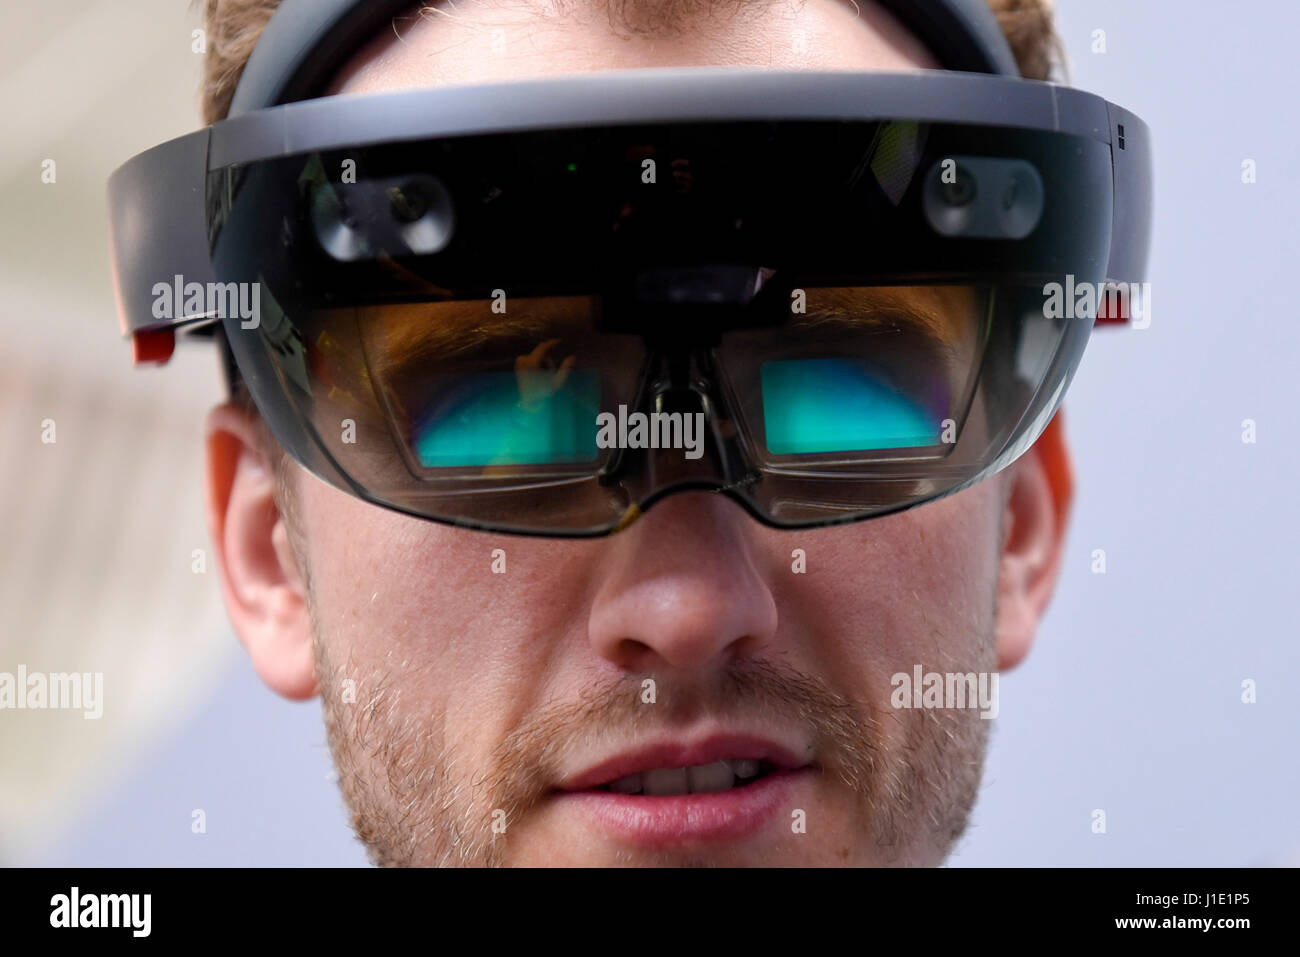 London, UK.  20 April 2017.  A user experiences the latest advancements in augmented reality using the Microsoft - Stock-Bilder